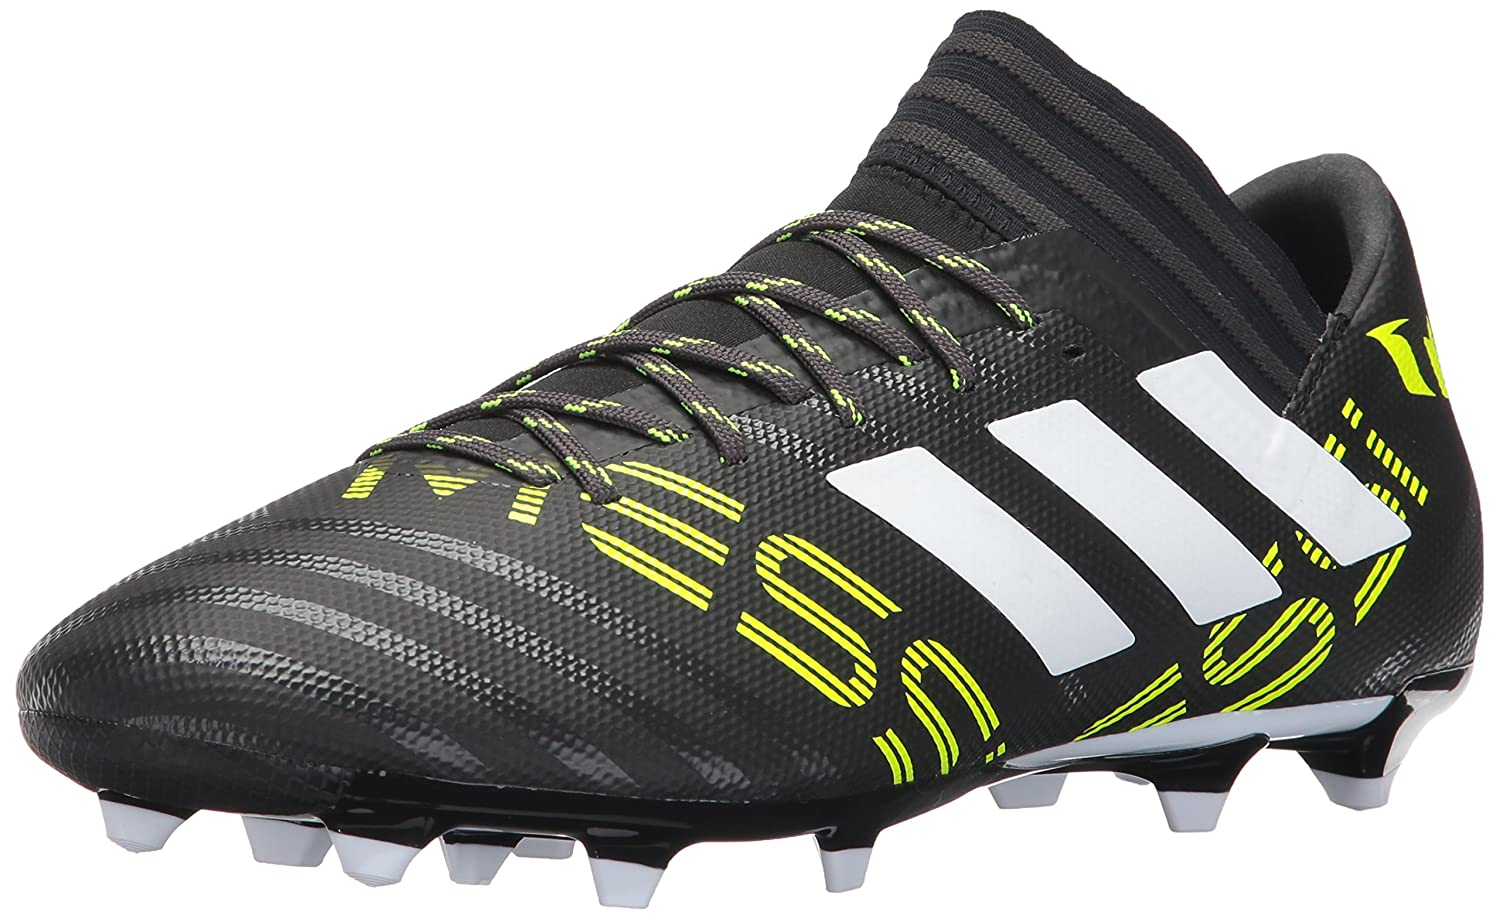 Adidas OriginalsBY2413 - Nemeziz Messi 17.3 Firm Ground Cleats Fußballschuh Herren